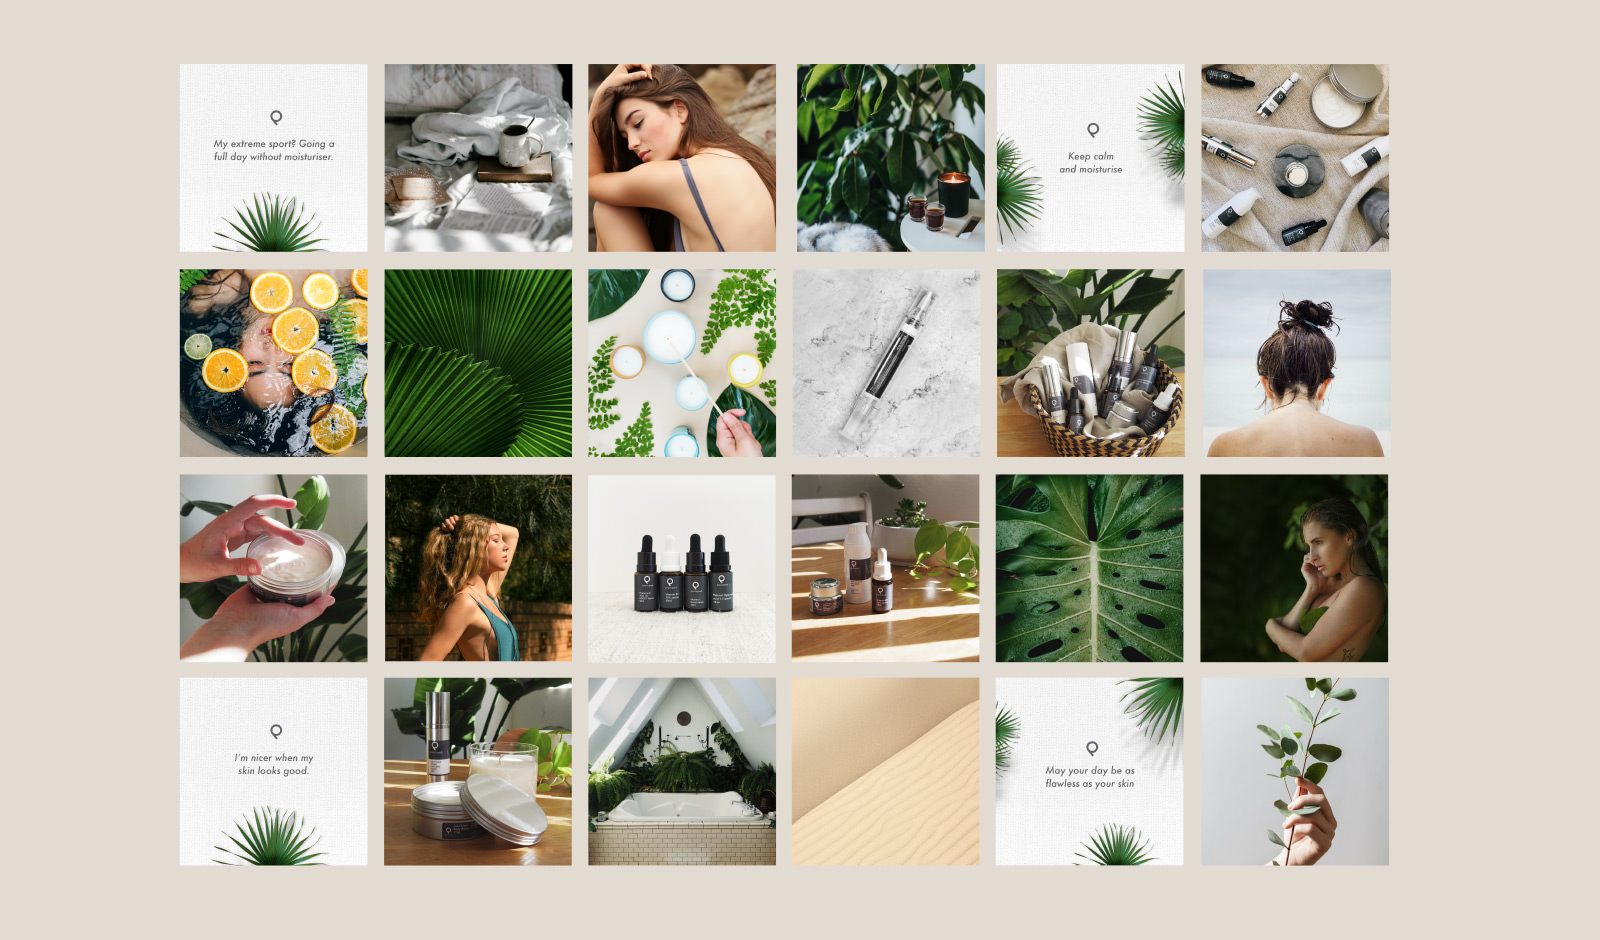 A collage of social media posts designed for Plumped Skincare